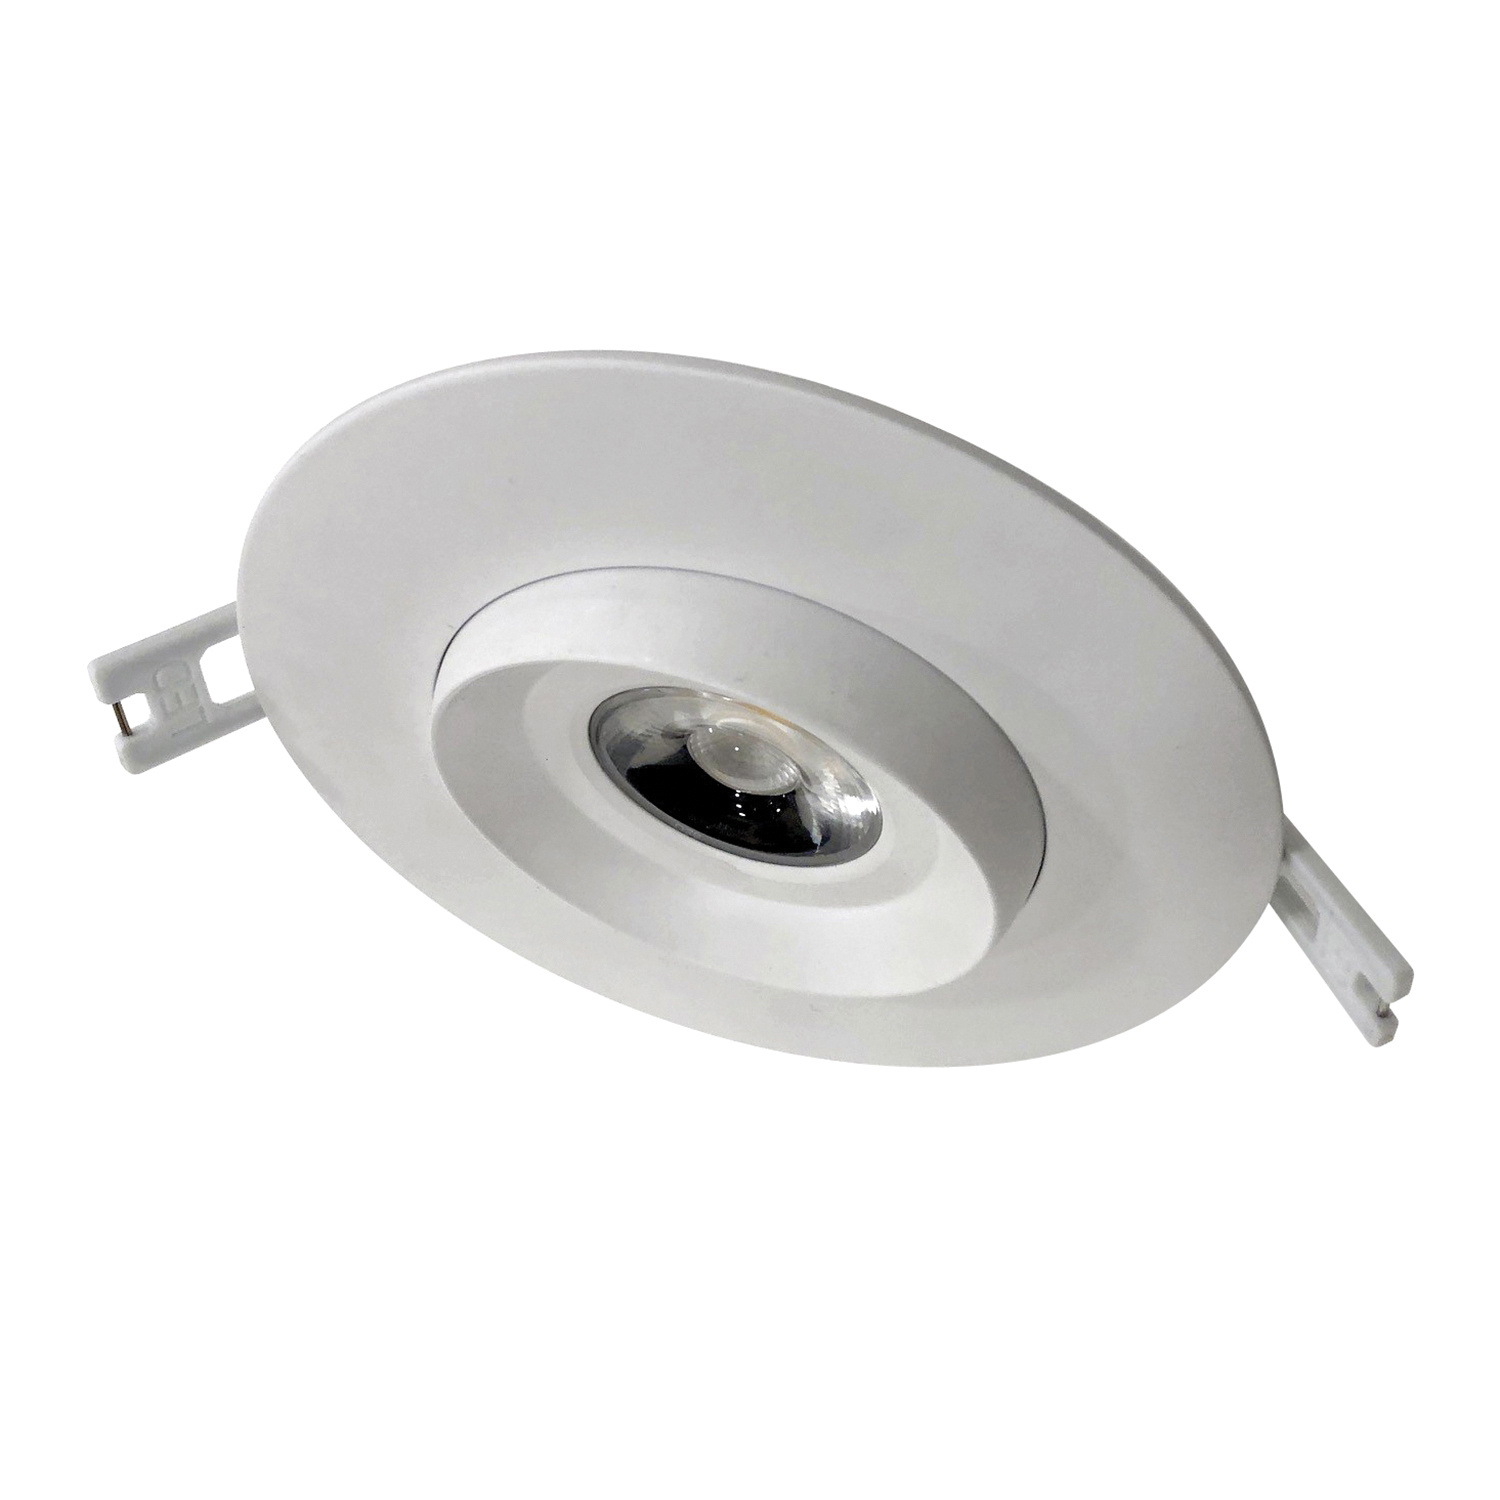 Nsl Gdl 4 12w 36 Nw Wh Dimmable Ic Inch Adjule Led Gimbal Down Light Round White Gloss Enamel